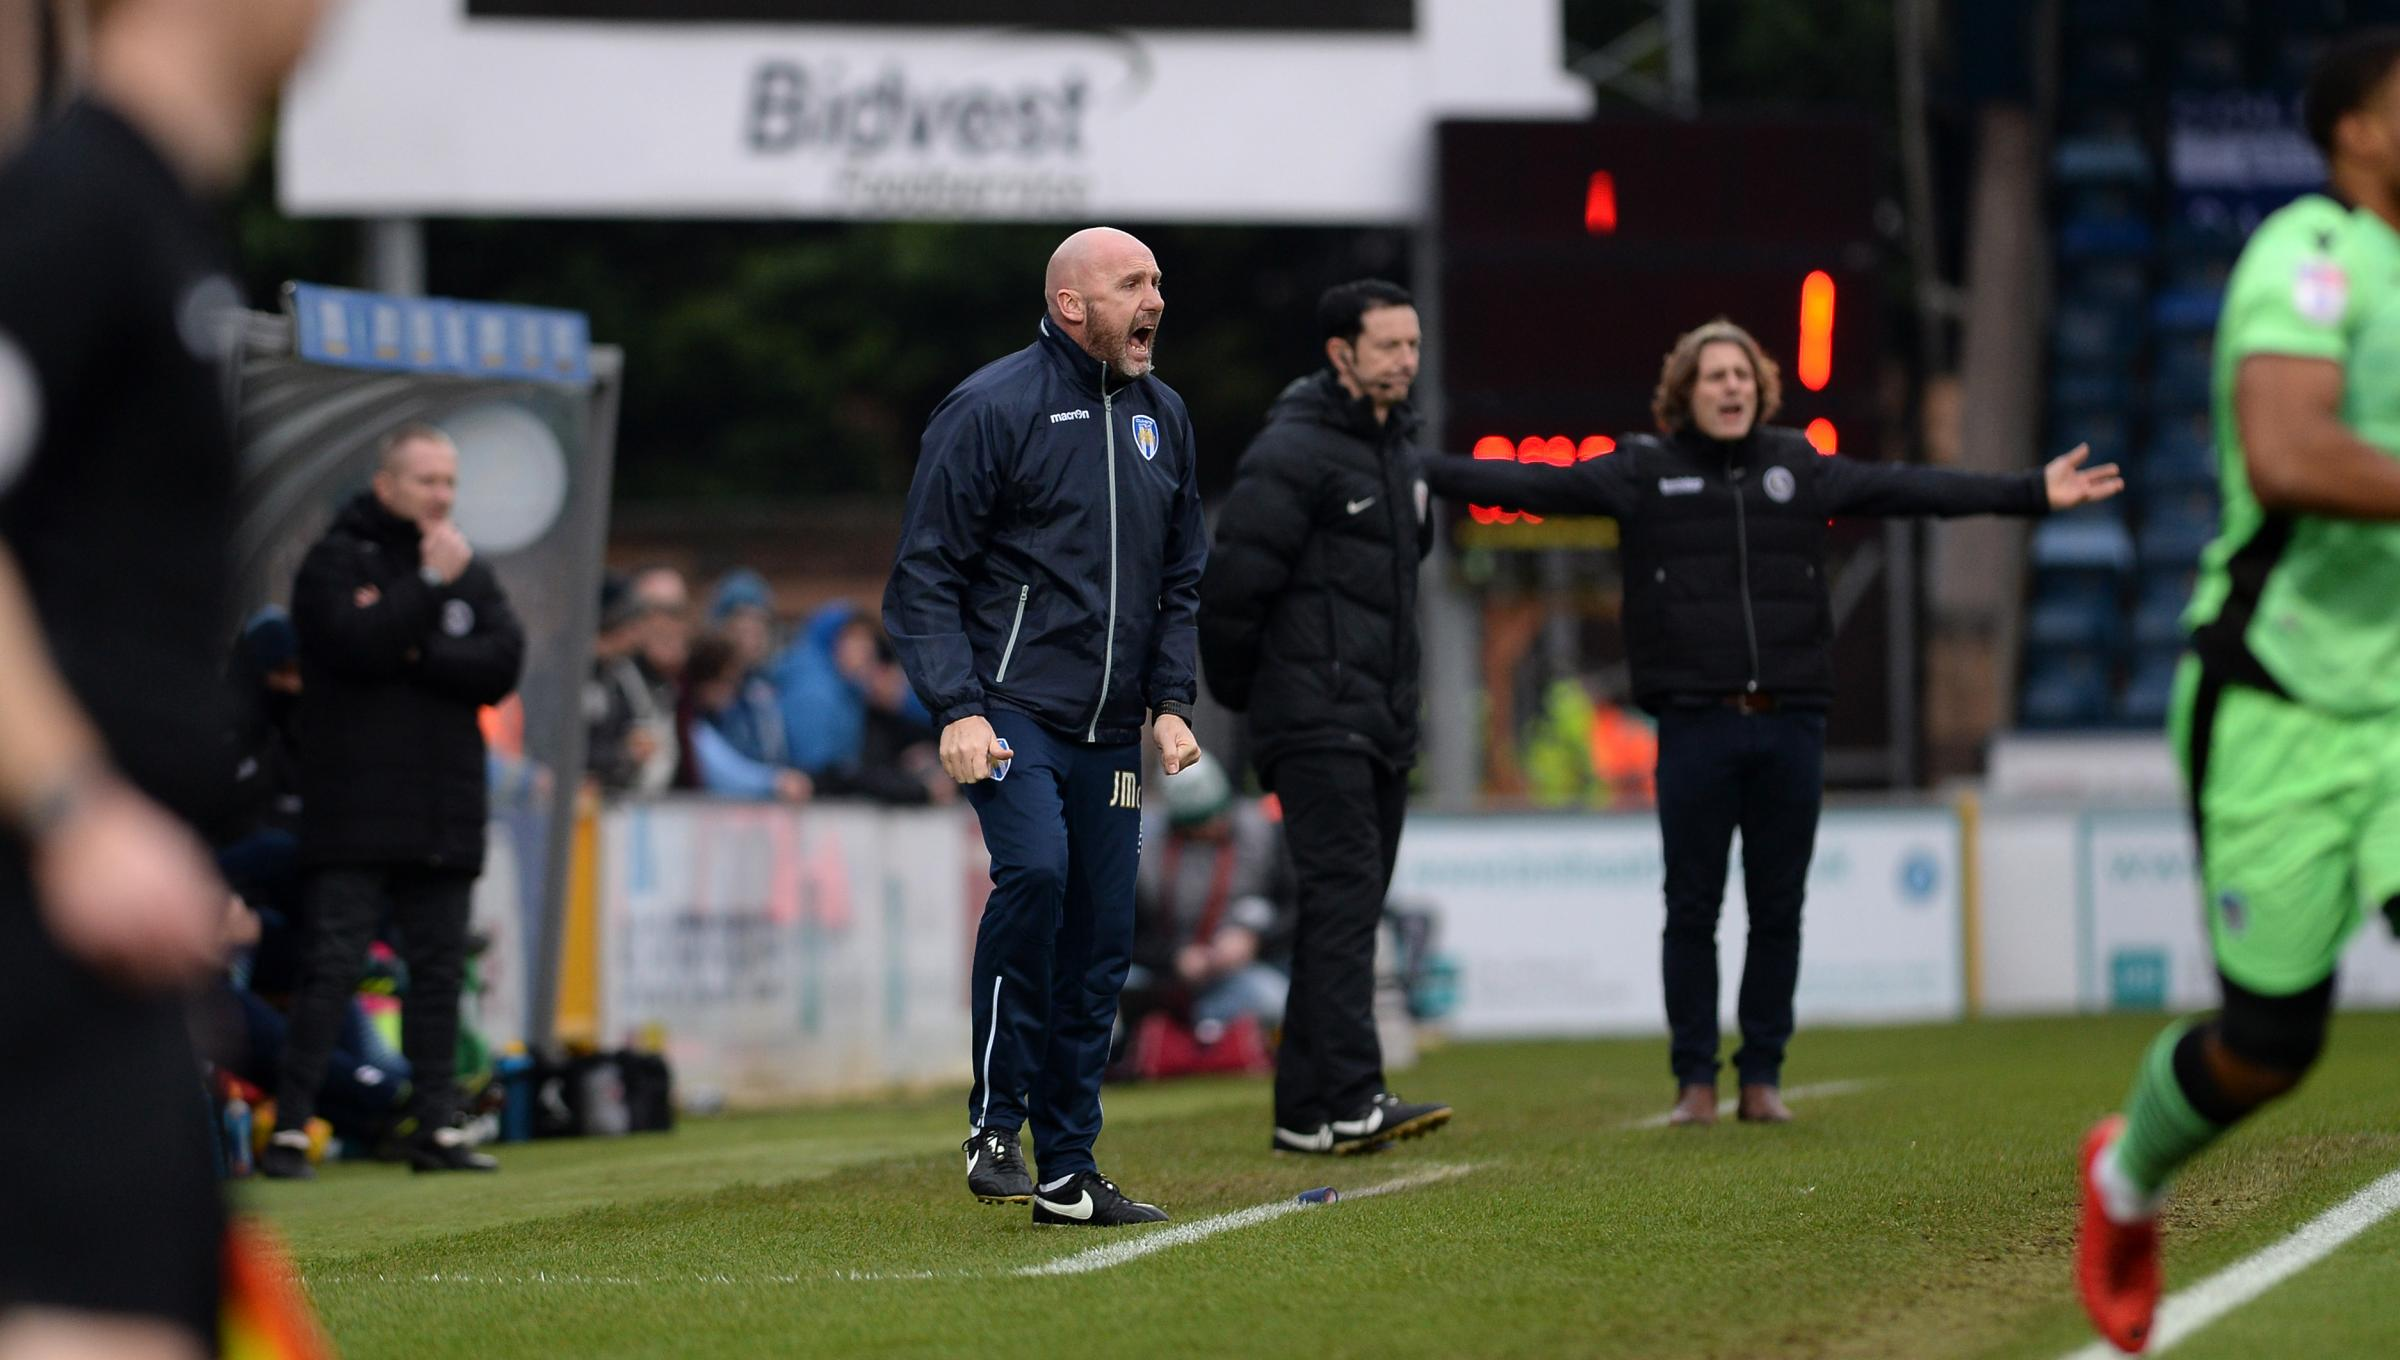 Giving instructions - Colchester United head coach John McGreal gives out orders to his side during their 3-1 defeat at Wycombe Wanderers Picture: PAGEPIX